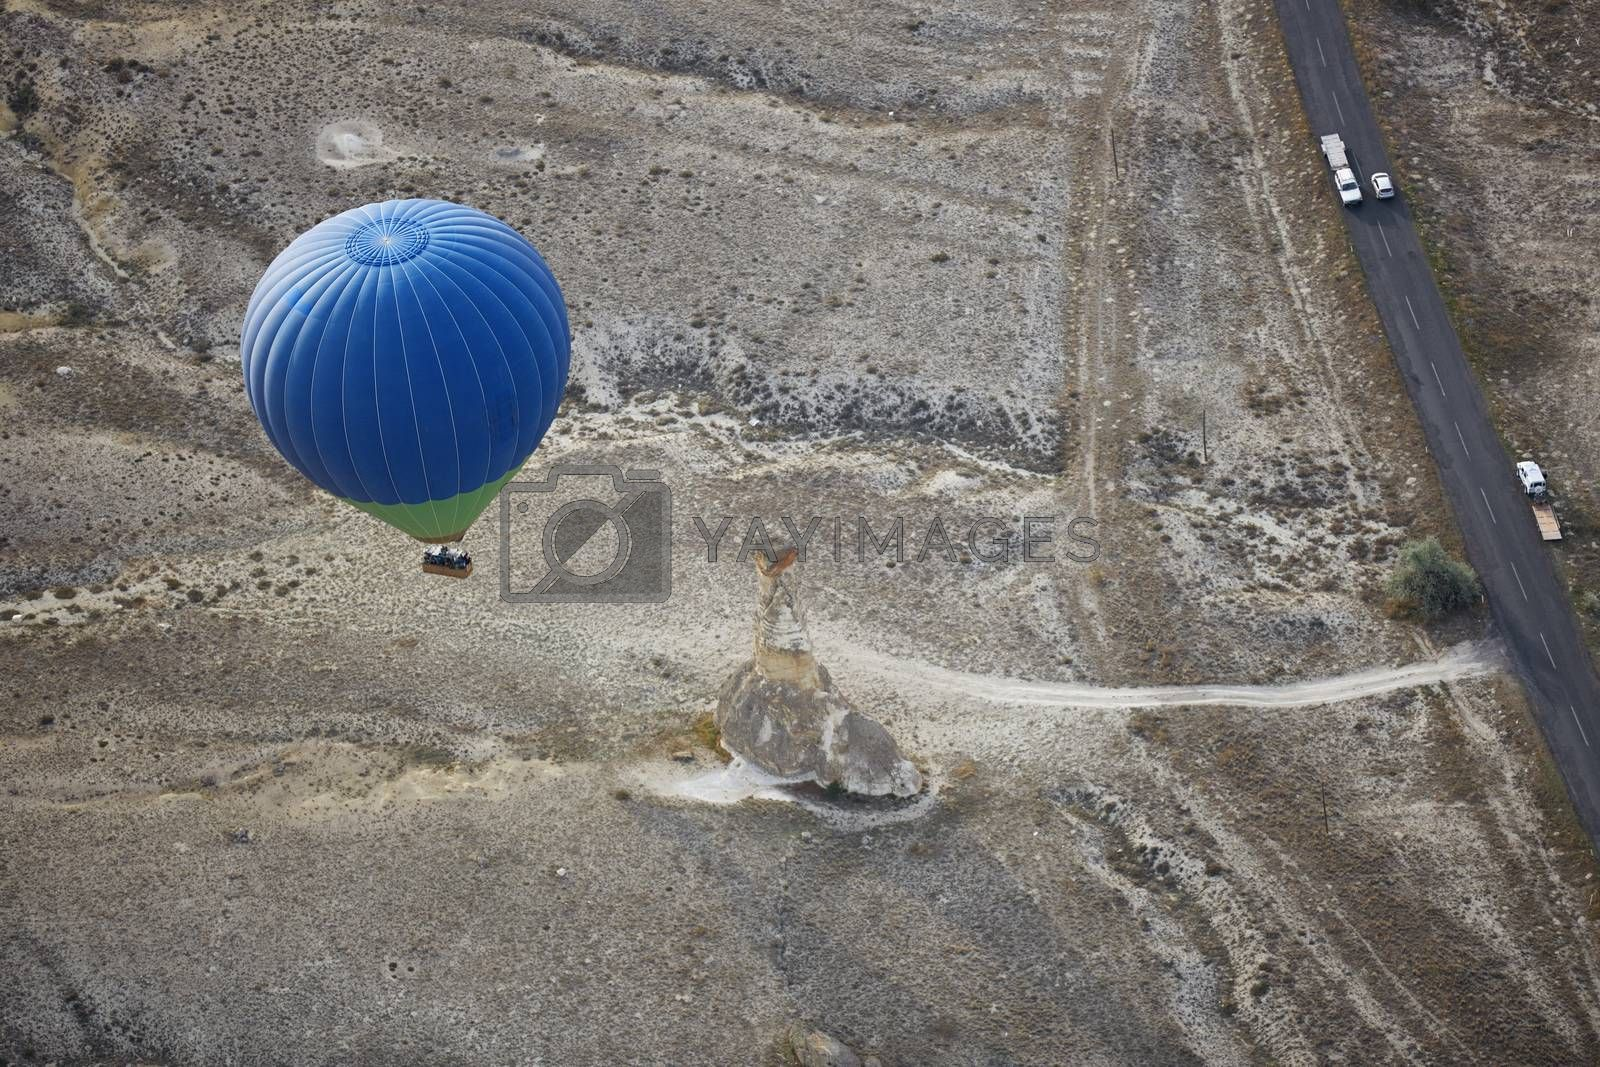 Blur hot air balloon flying over the road with motor transport. View from above